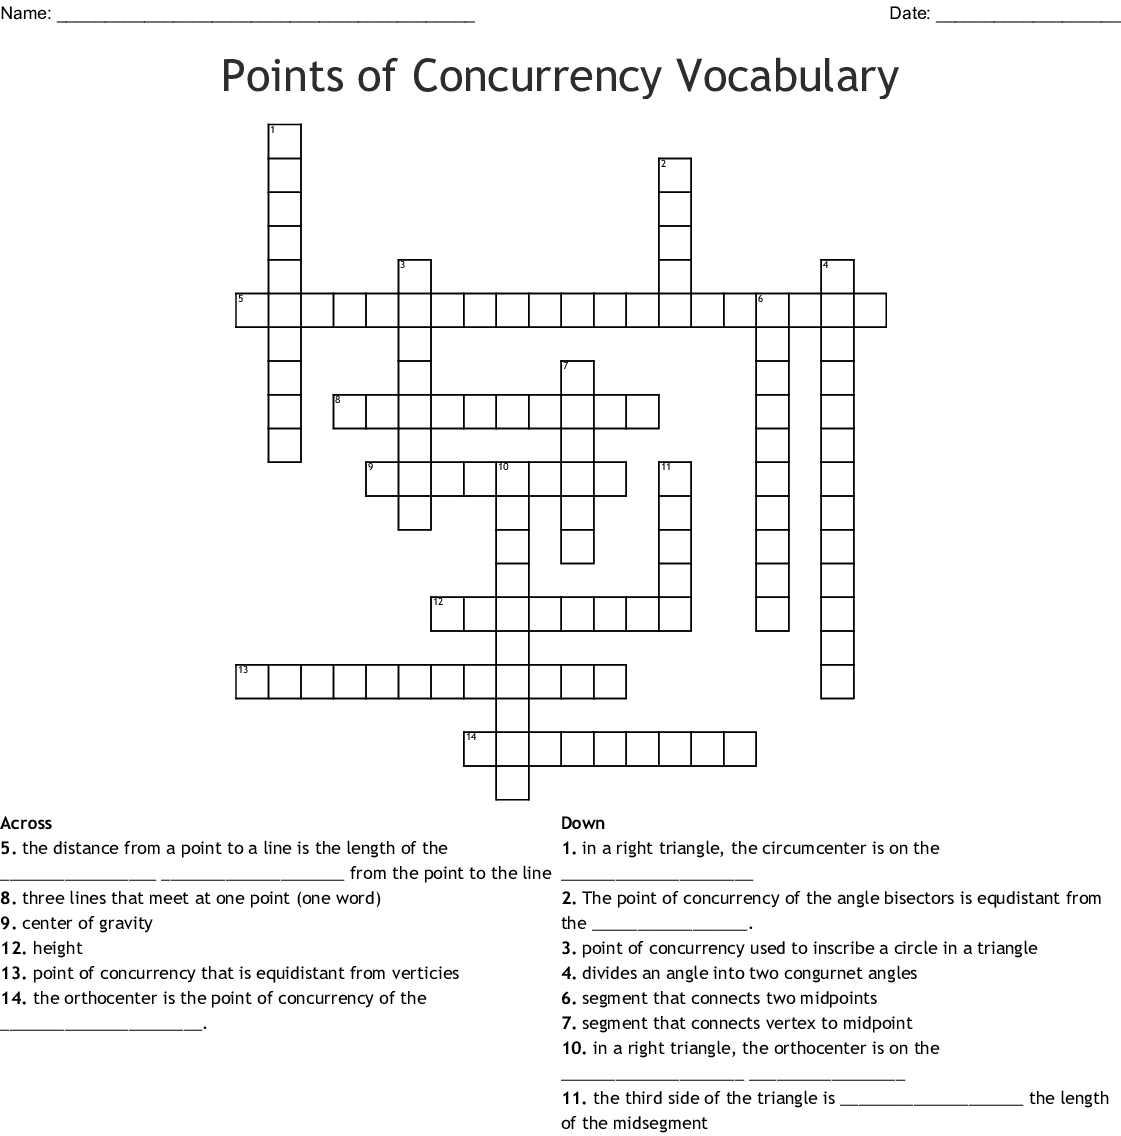 Points Of Concurrency Vocabulary Crossword